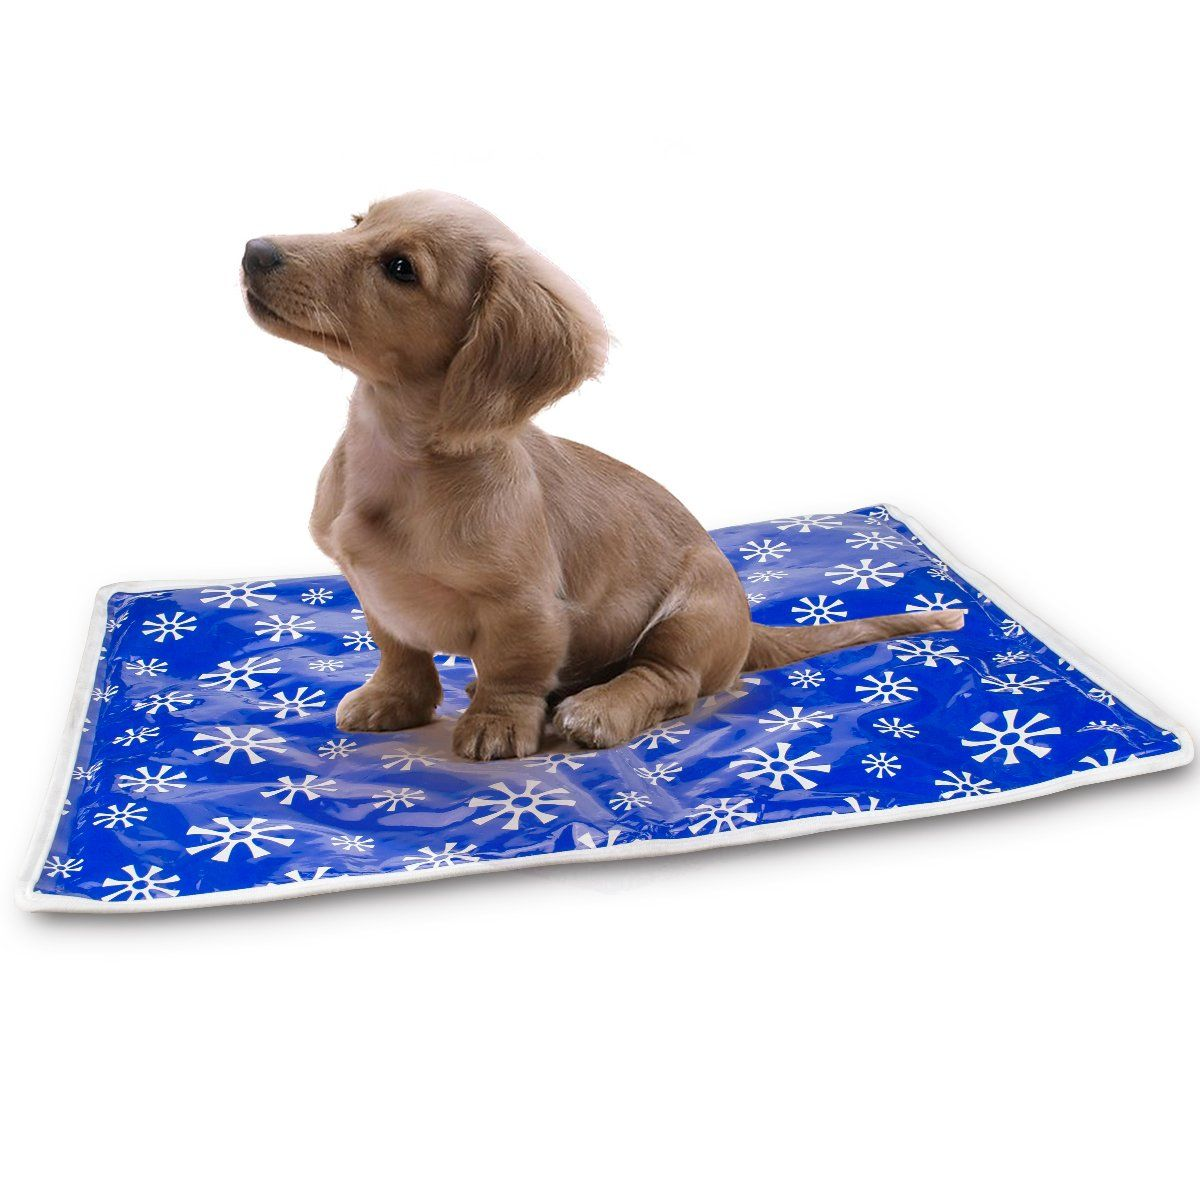 Blue Pet Cooling Mat 20 x 16 inch Fabric Taffeta Pet Pads